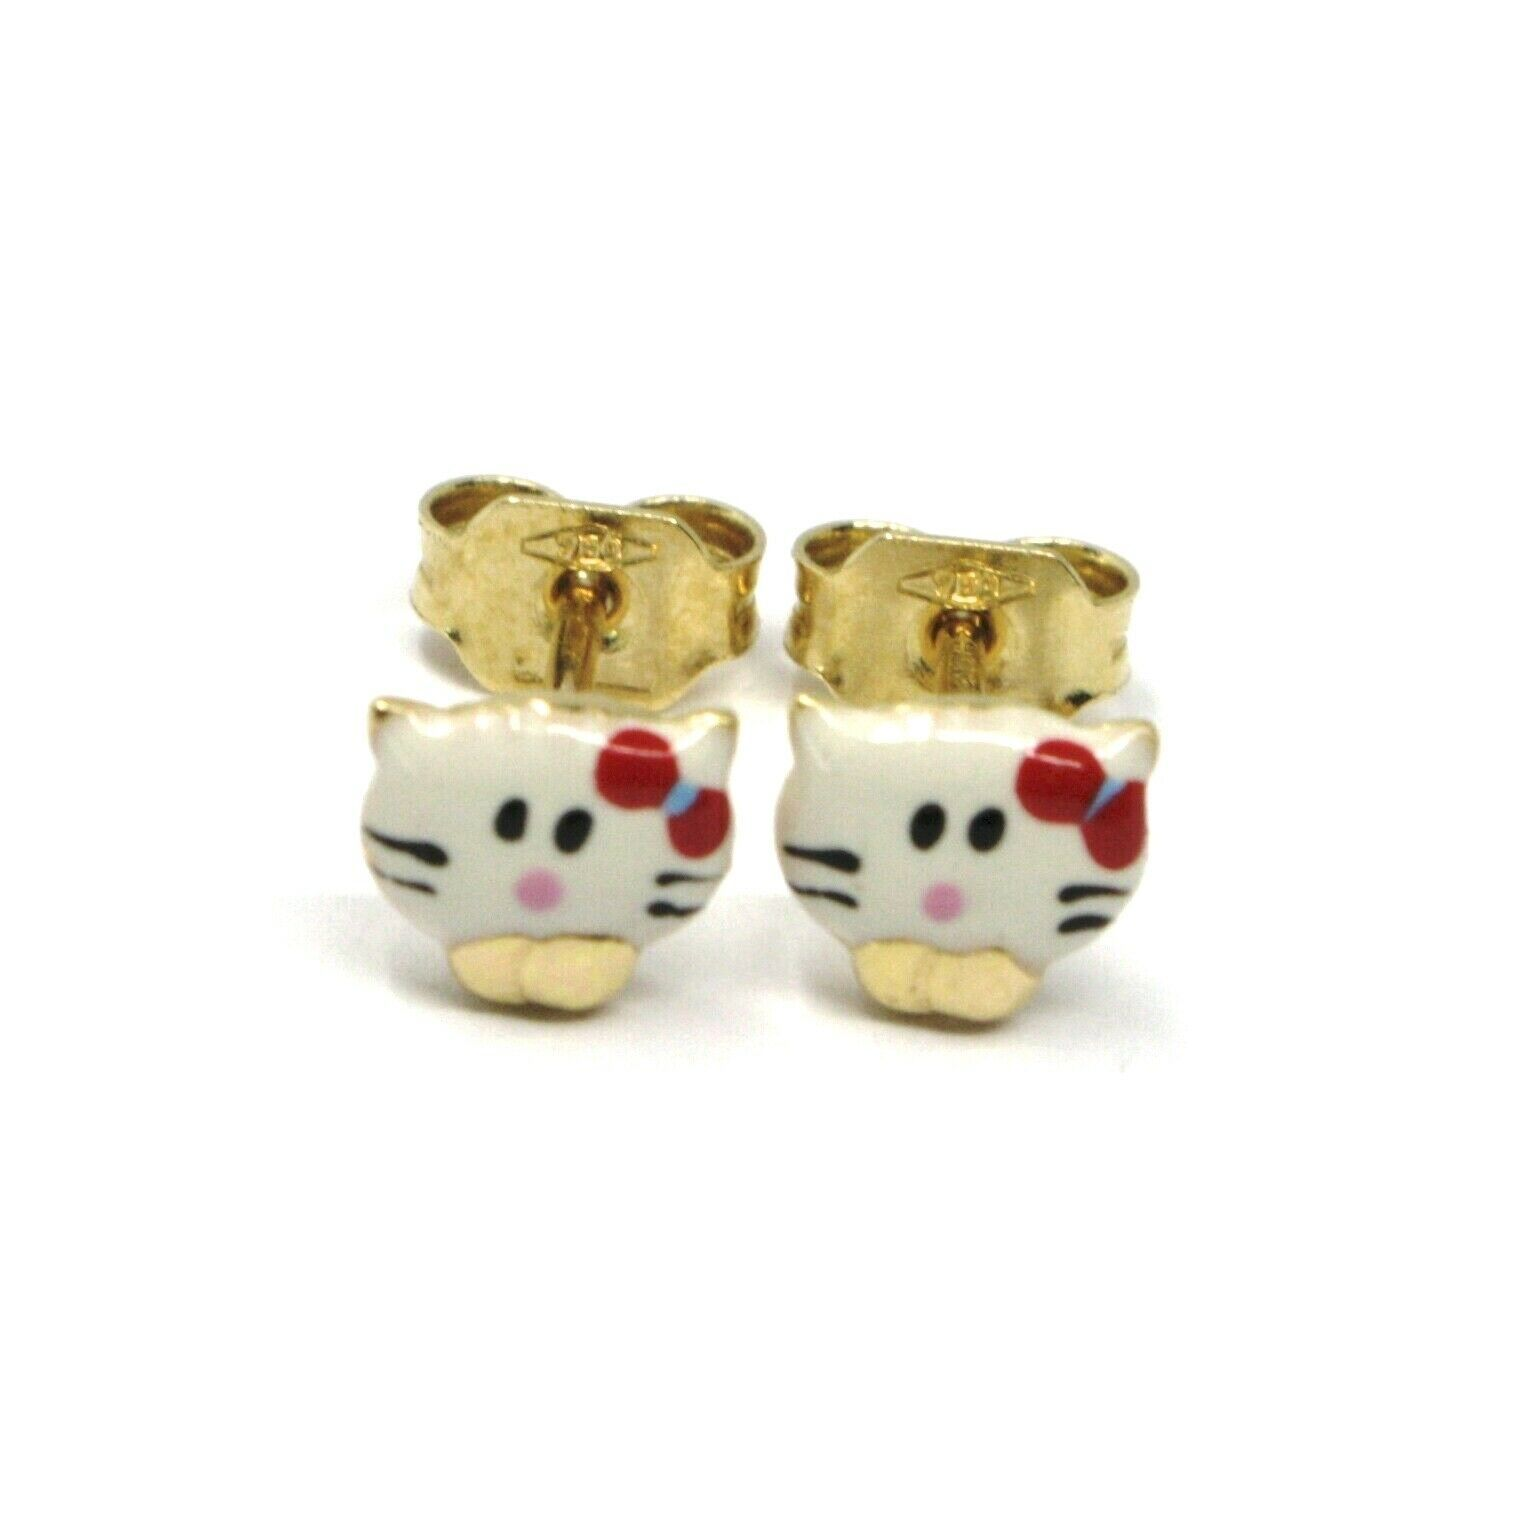 18K YELLOW GOLD ROUNDED ENAMEL EARRINGS MINI CAT 6mm, MADE IN ITALY